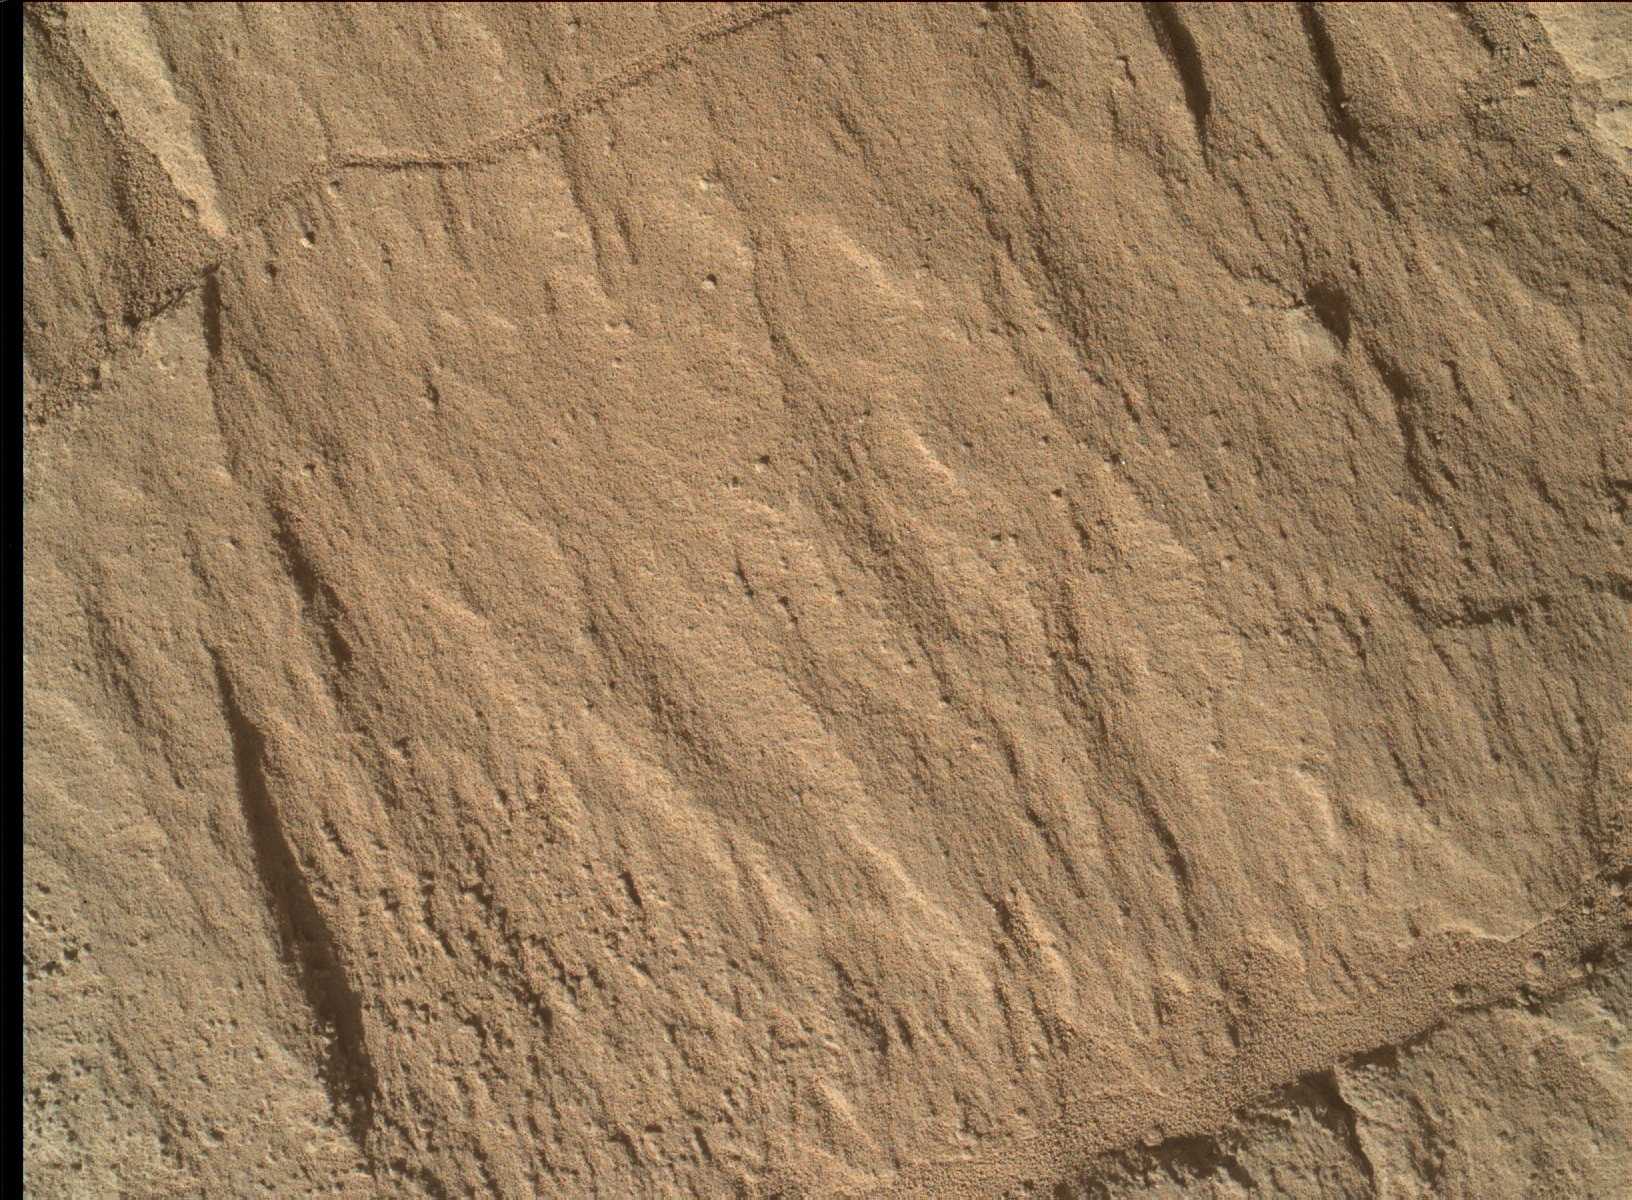 Nasa's Mars rover Curiosity acquired this image using its Mars Hand Lens Imager (MAHLI) on Sol 1318